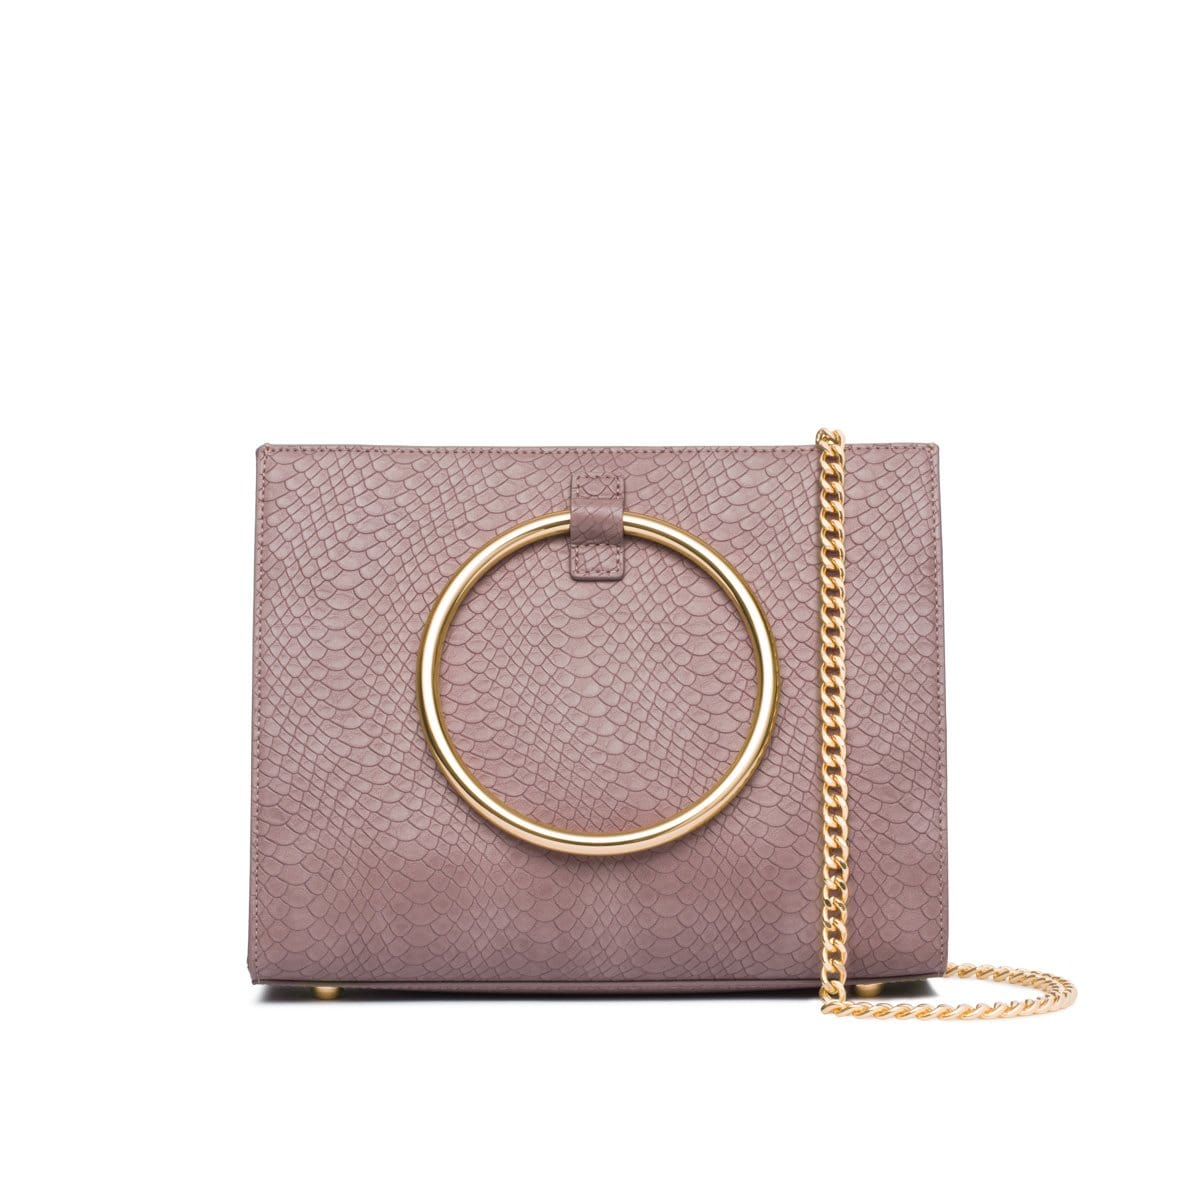 Mauve Moda Handbag Yellow Gold